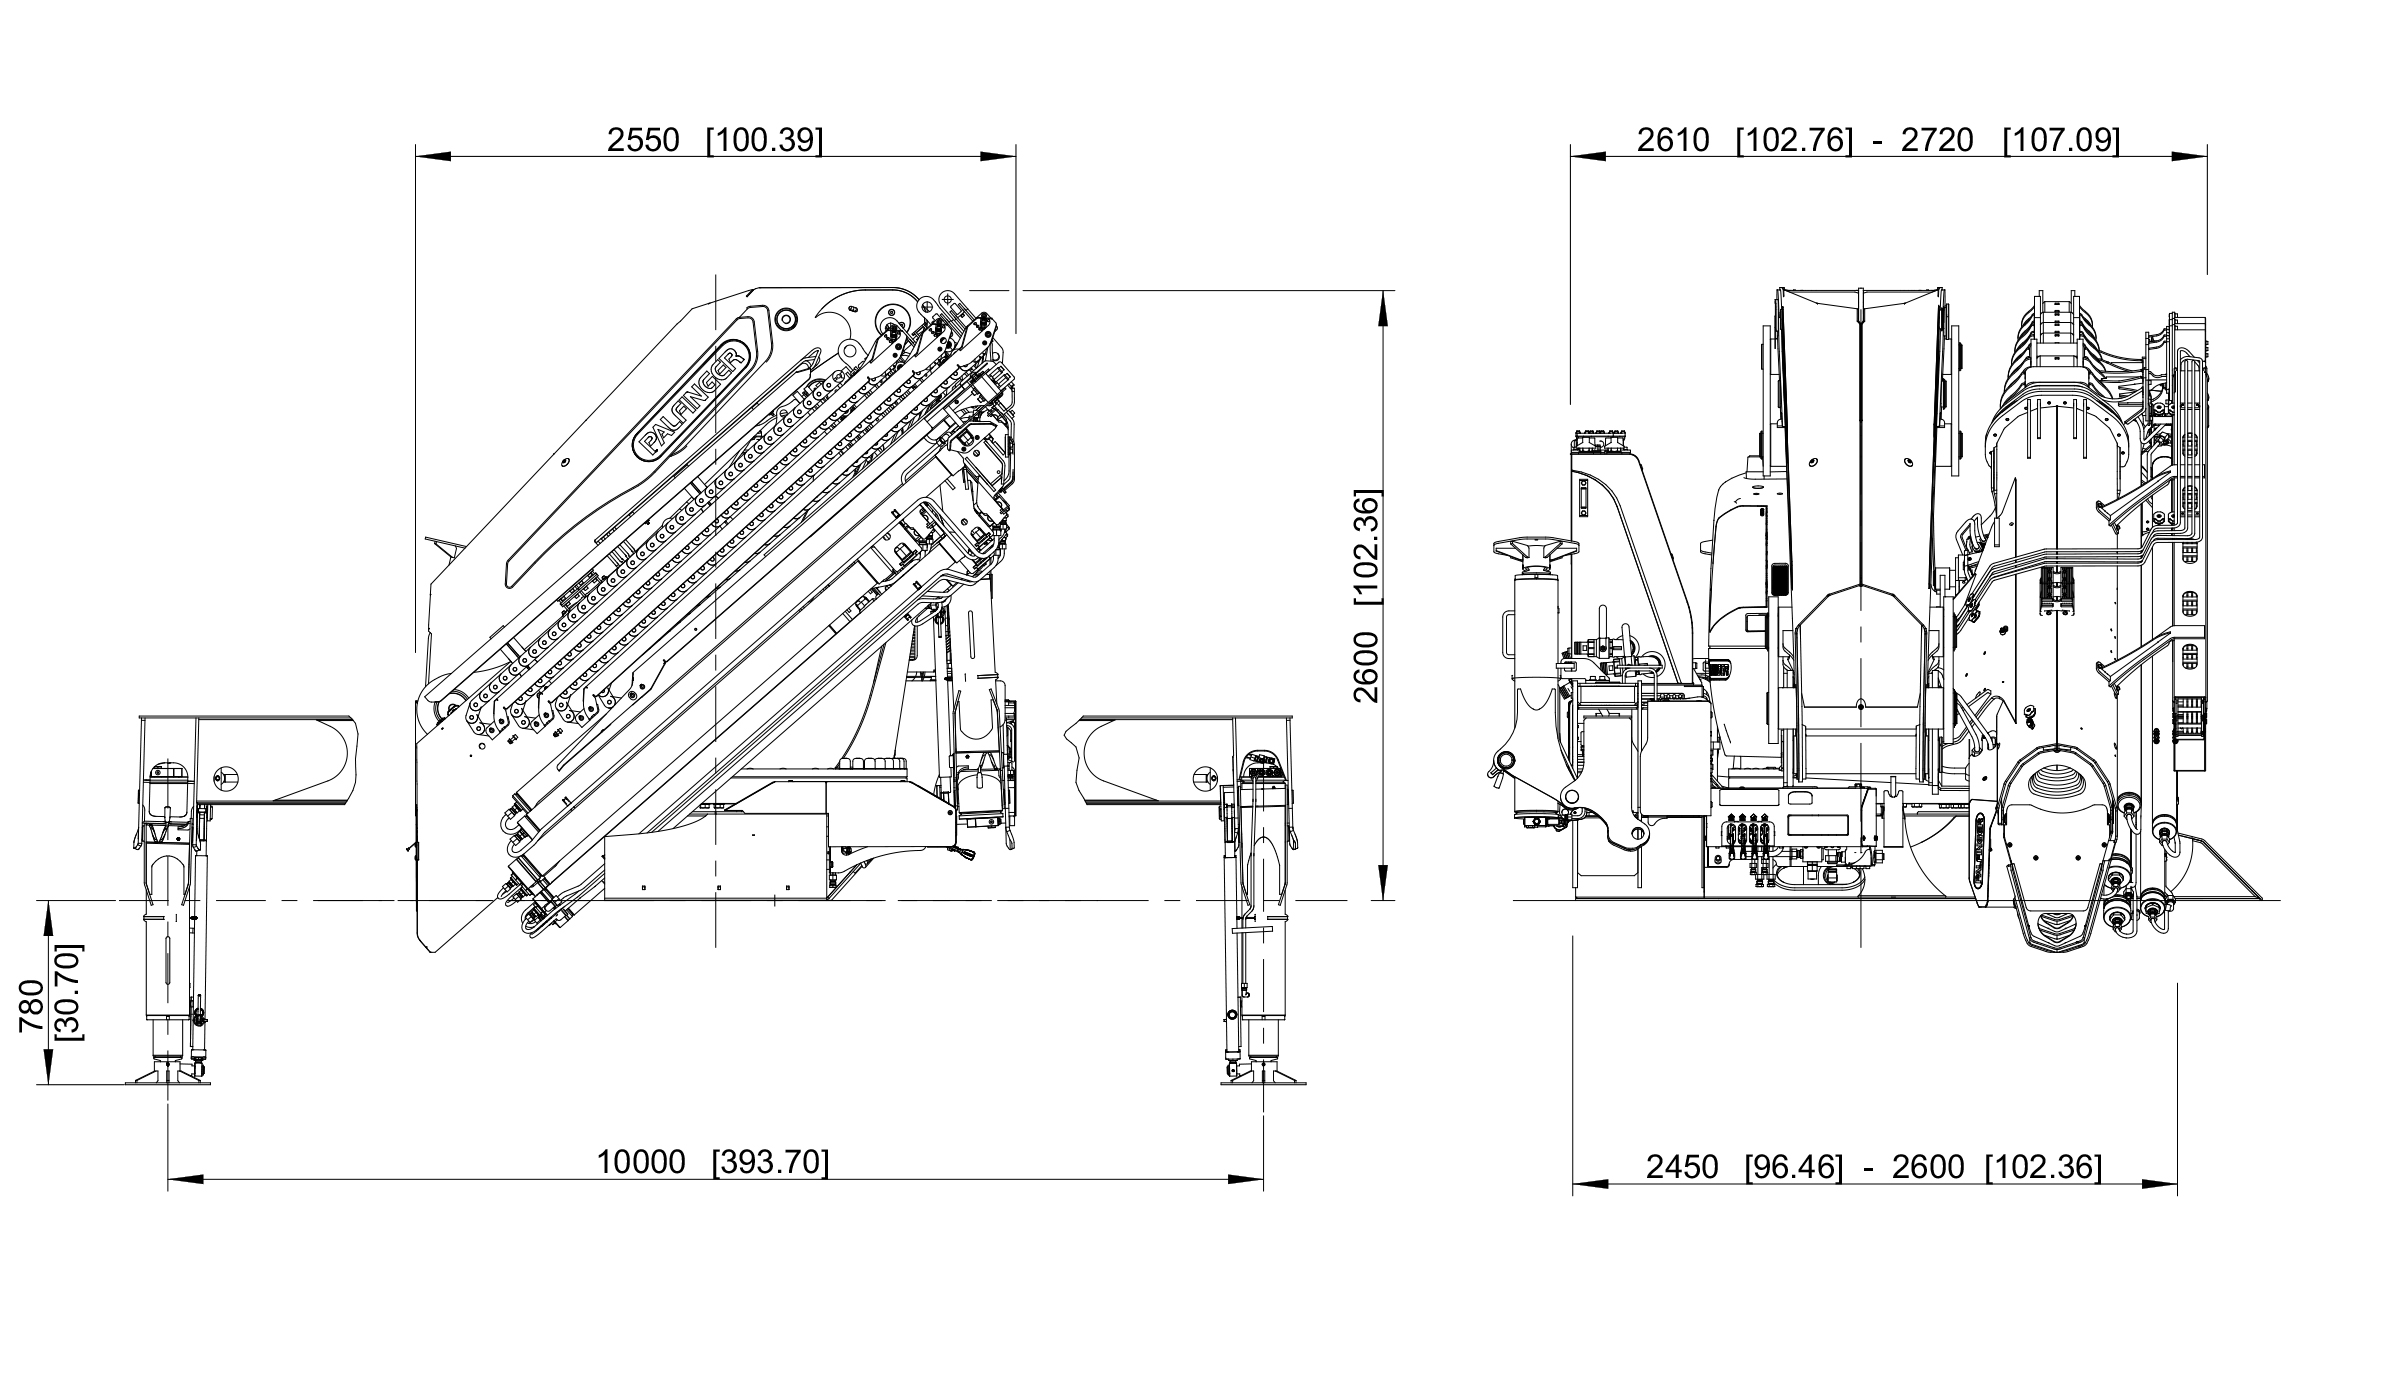 Wiring Diagram Also Waltco Liftgate Switch On moreover Maxon Valve Wiring Diagram also Mbb Interlift Wiring Diagram together with Ford Ls25 Wiring Diagram besides Kubota Wiring Diagrams. on palfinger wiring diagrams